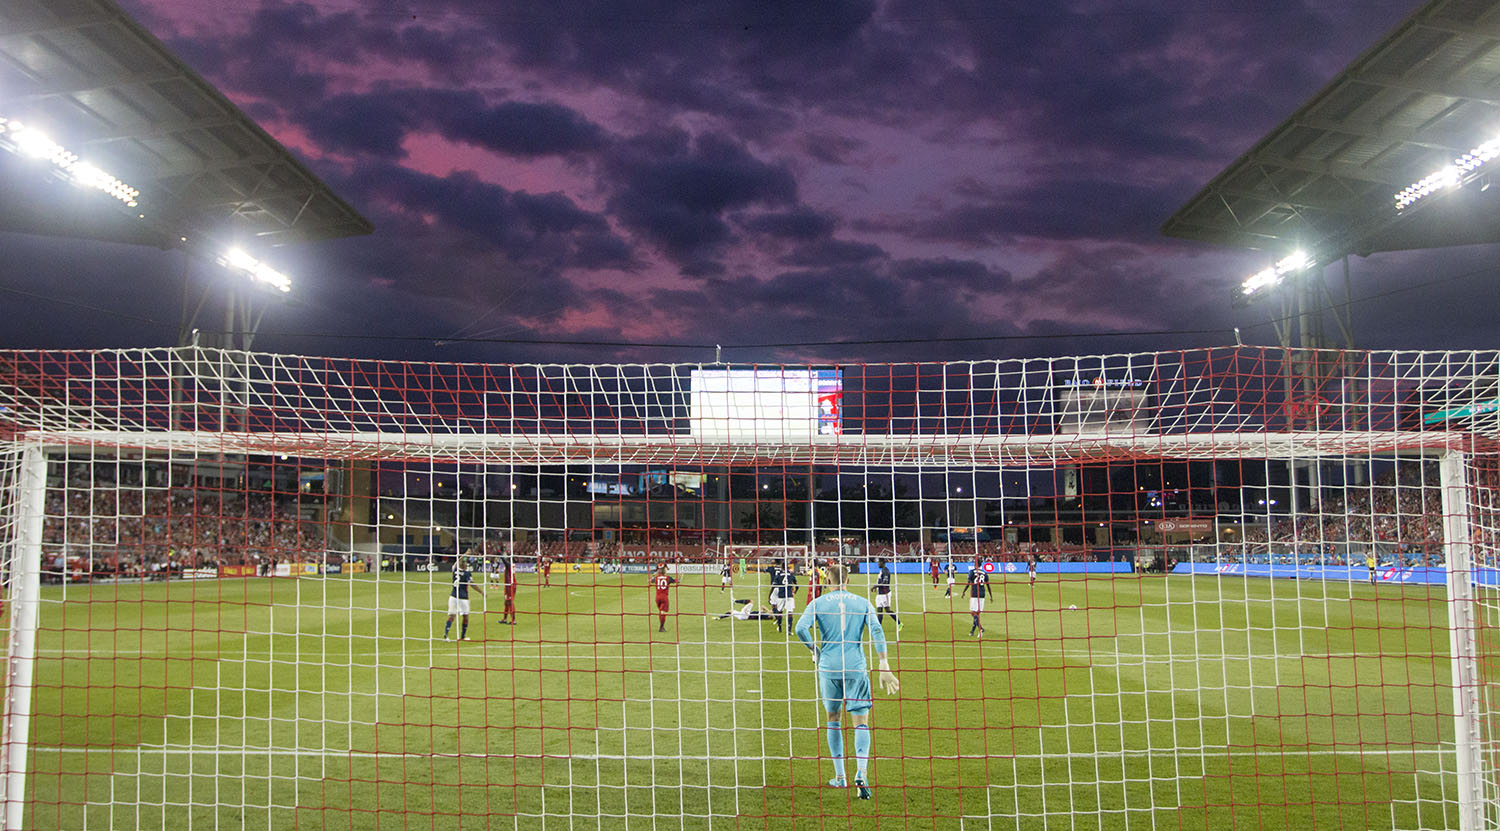 The sunset on a beautiful summer night at BMO Field. Image by Dennis Marciniak of denMAR